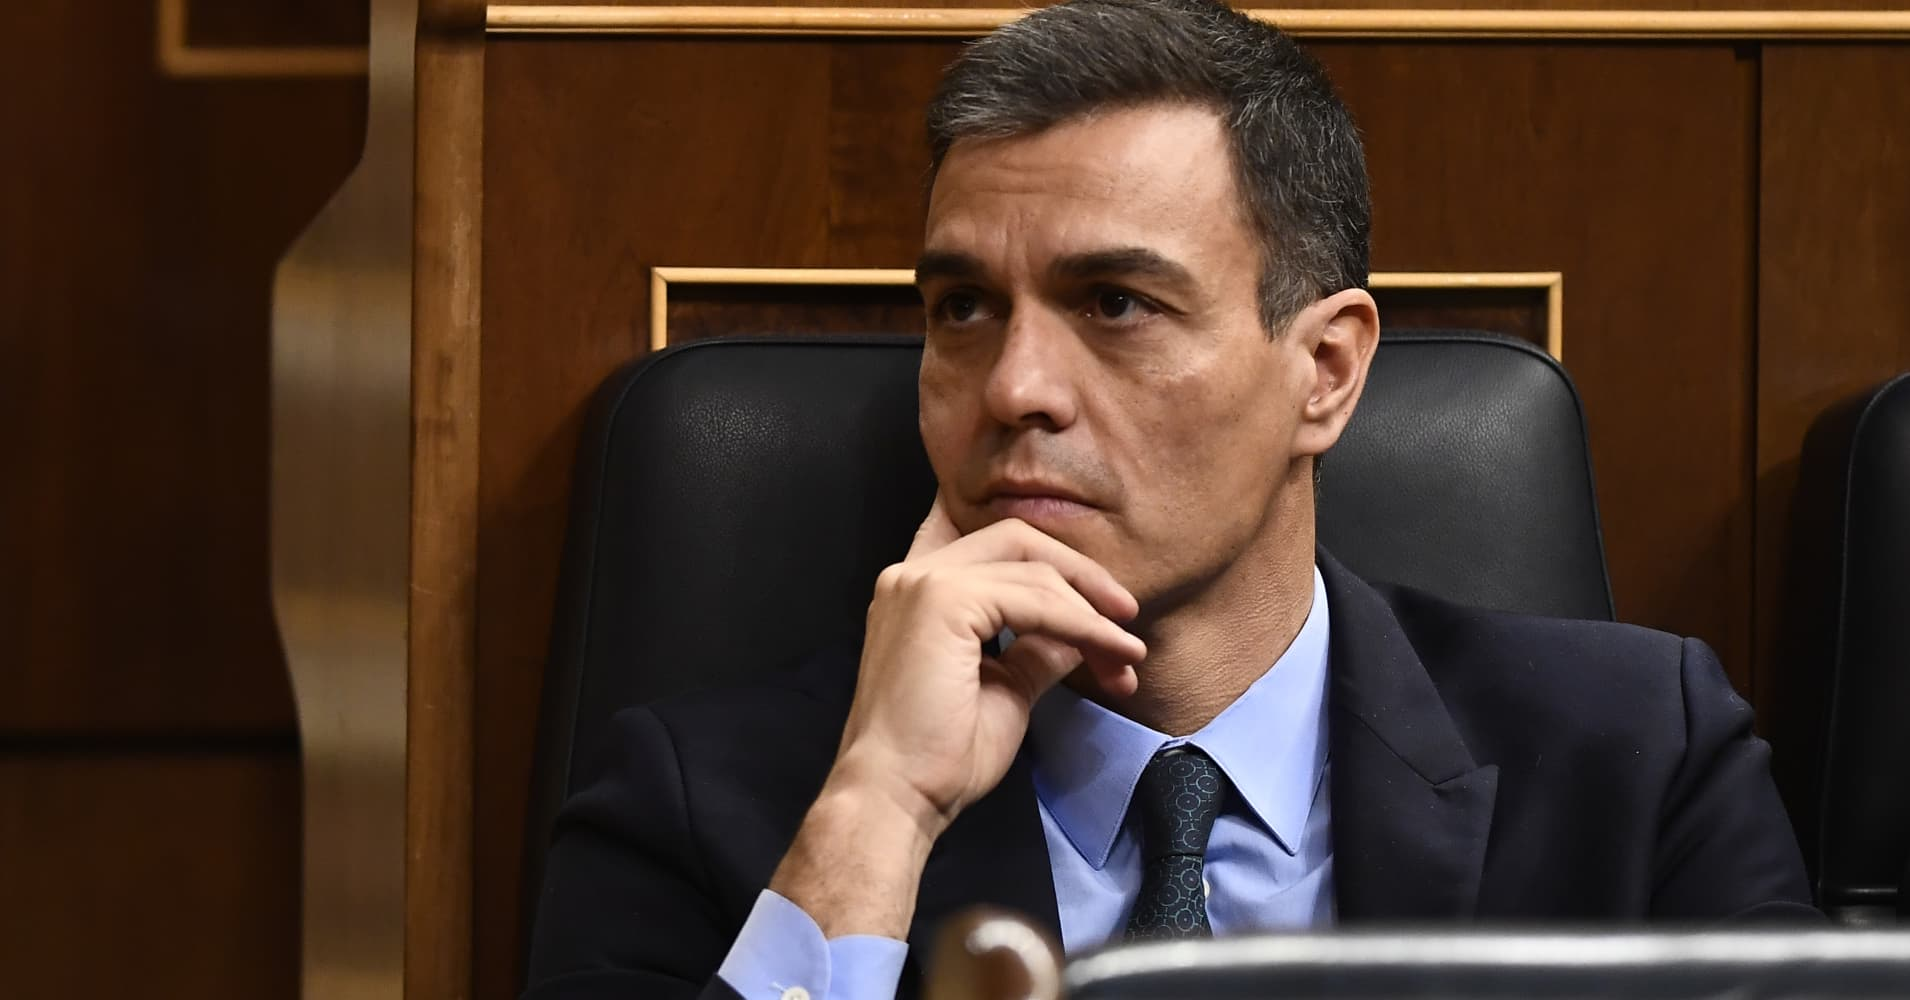 Spain's government loses budget vote, paving way for snap election